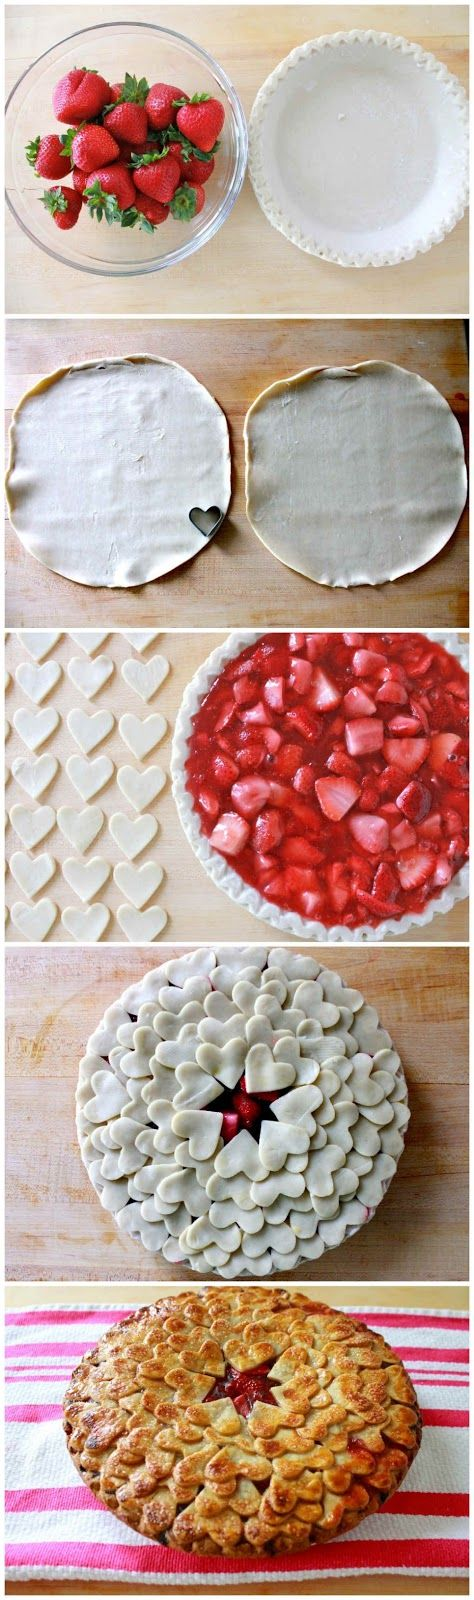 Heart pie crust